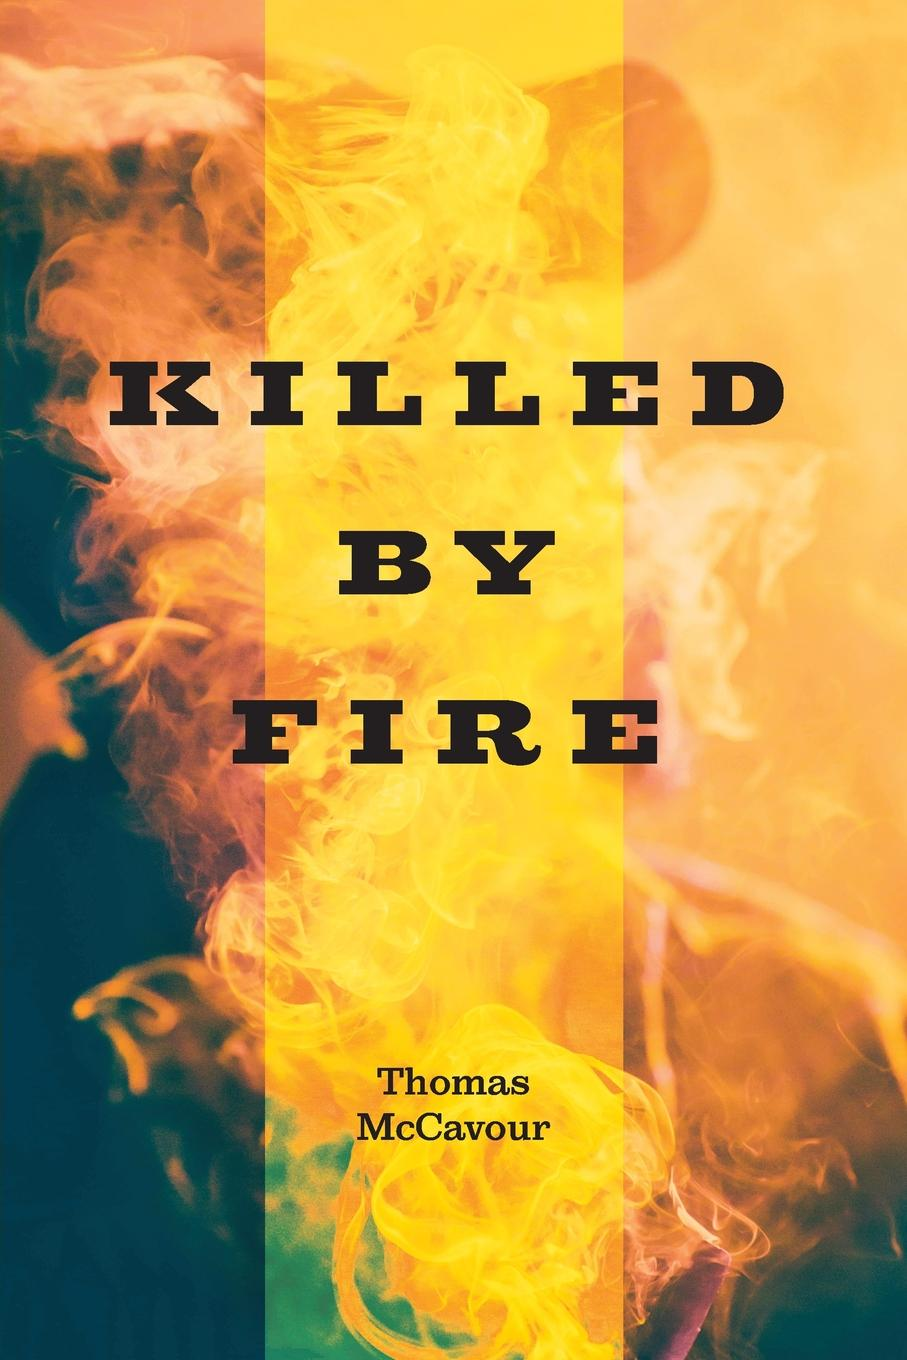 Thomas McCavour Killed by Fire beverly bird in the line of fire